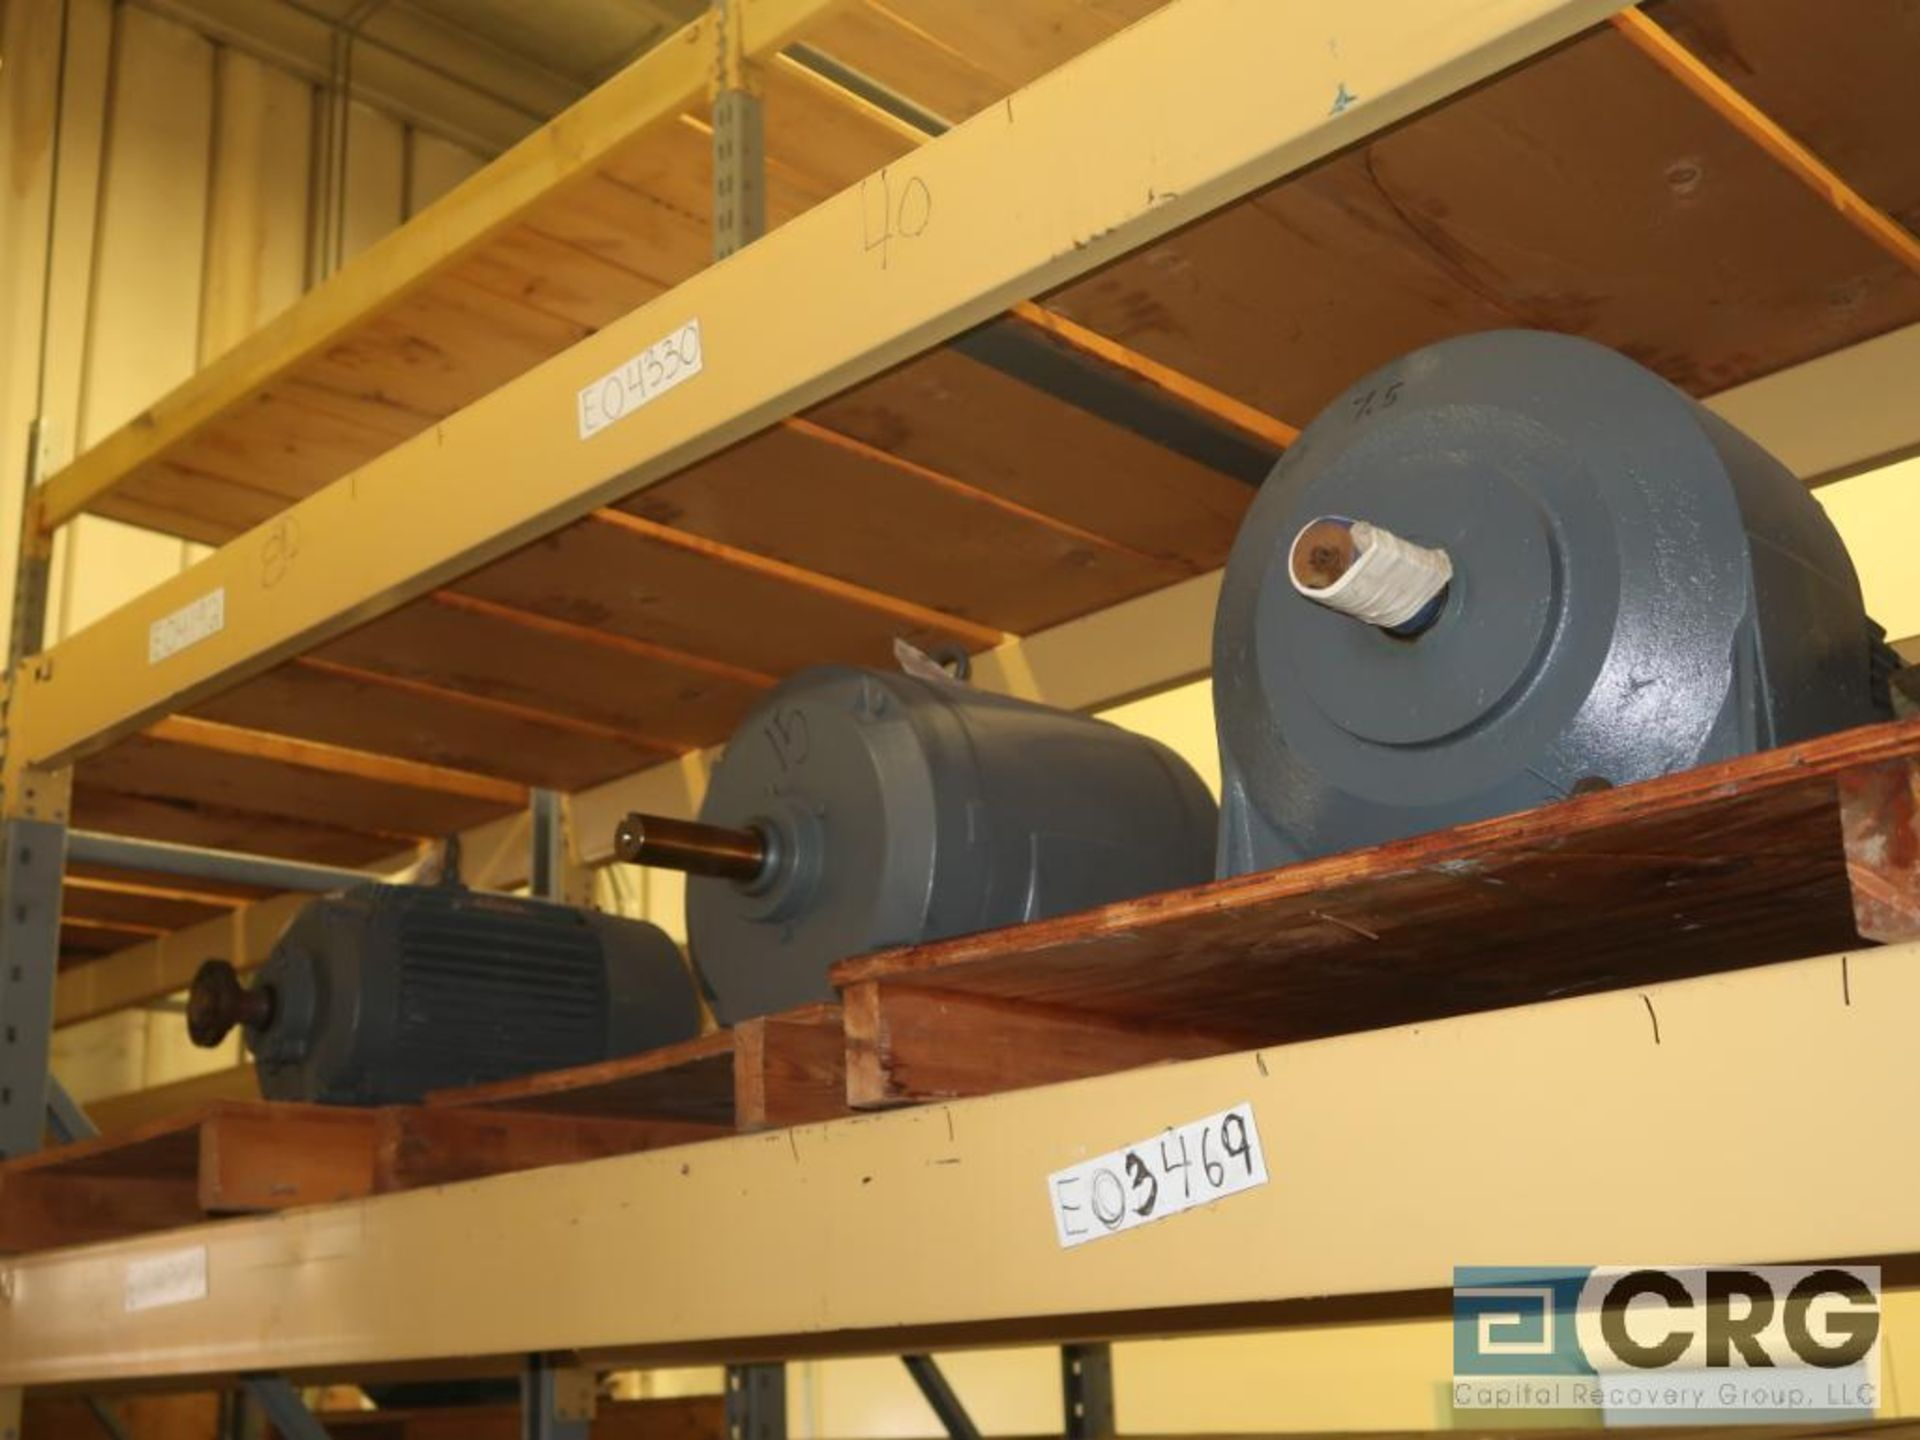 Lot of (29) assorted 15 HP, 10 HP, and 7.5 HP motors on (7) shelves, some with gear drives (Motor - Image 7 of 11